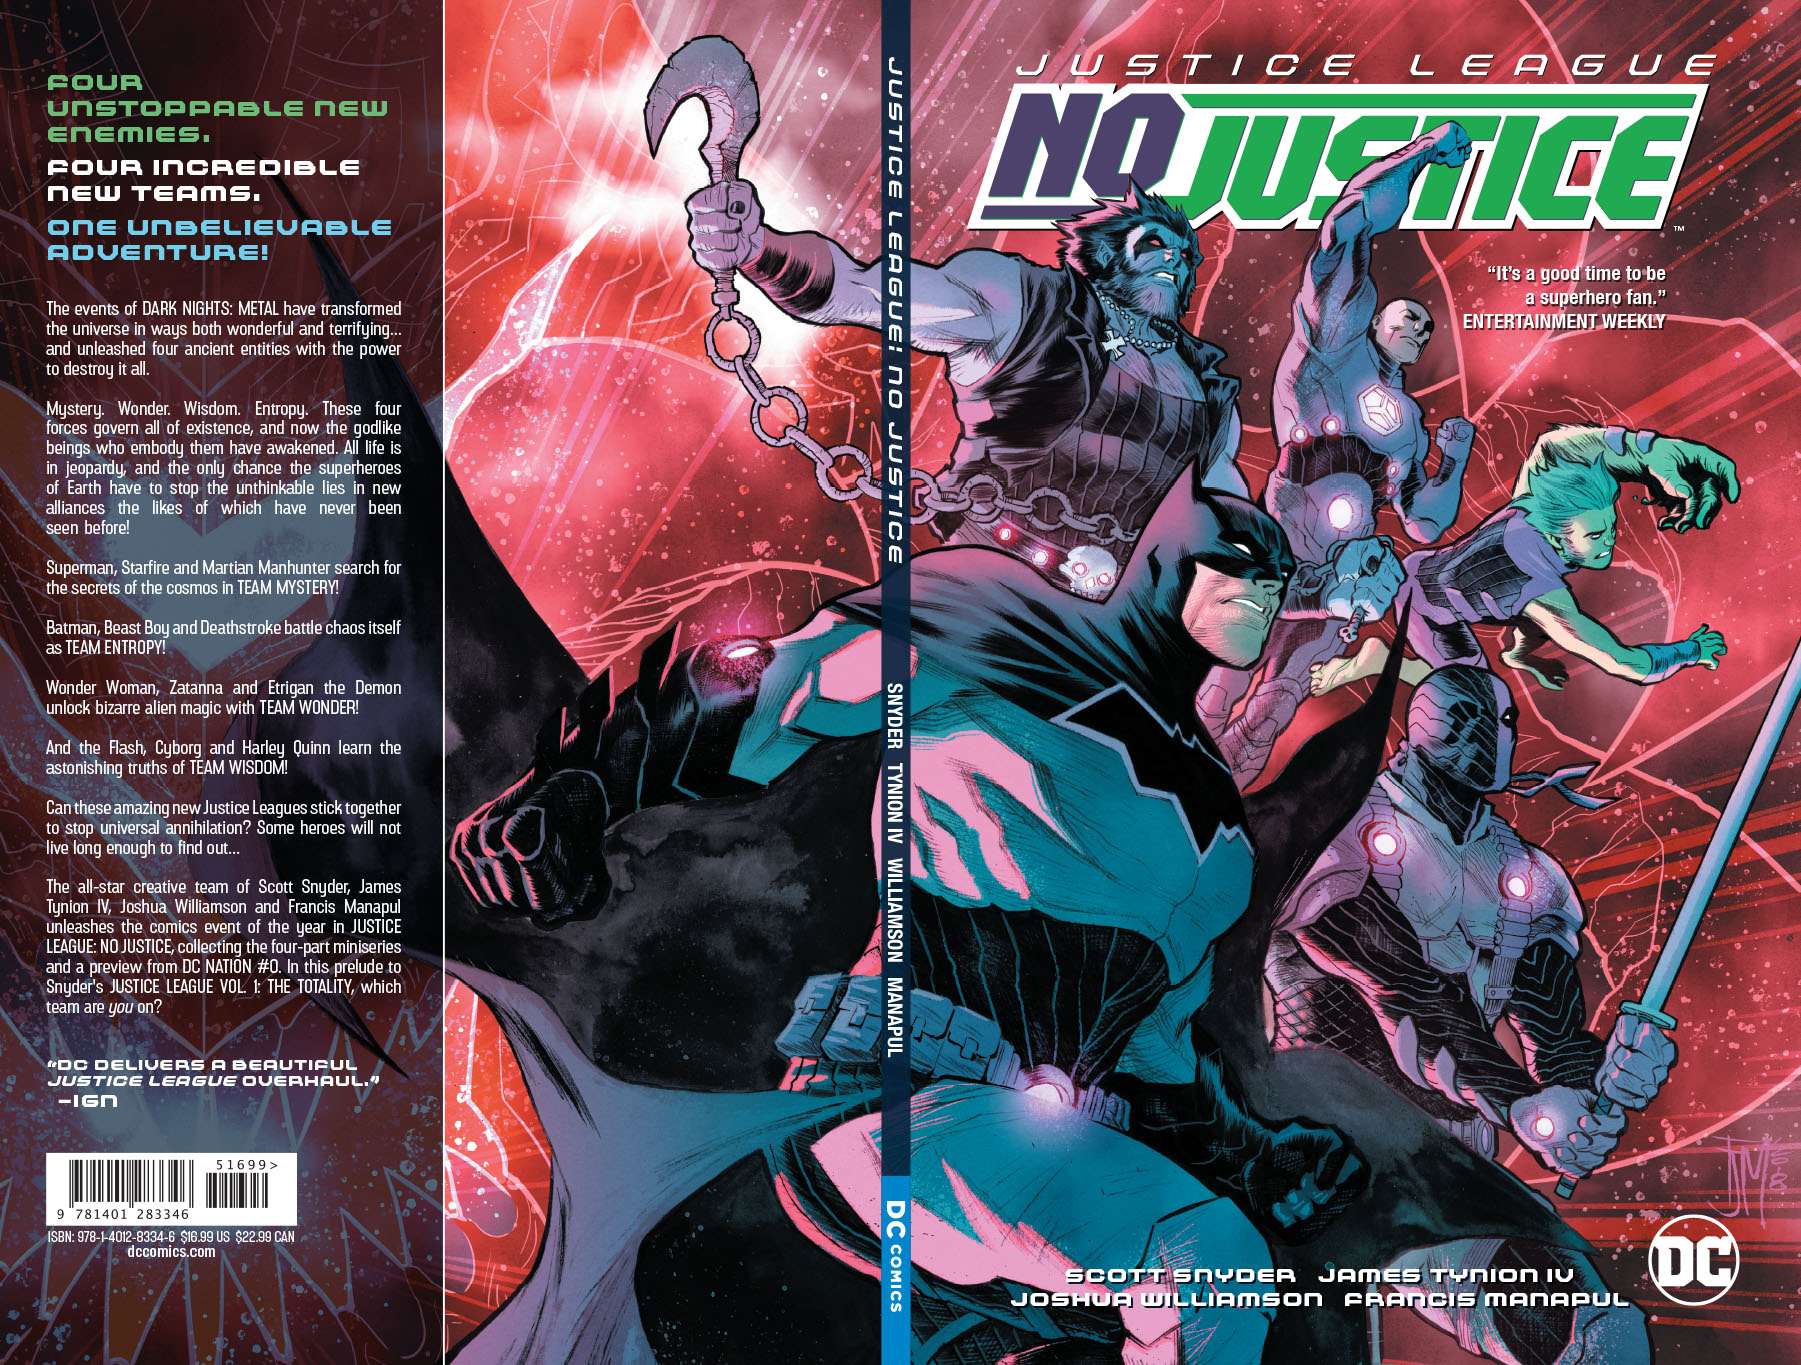 JUSTICE LEAGUE NO JUSTICE TP